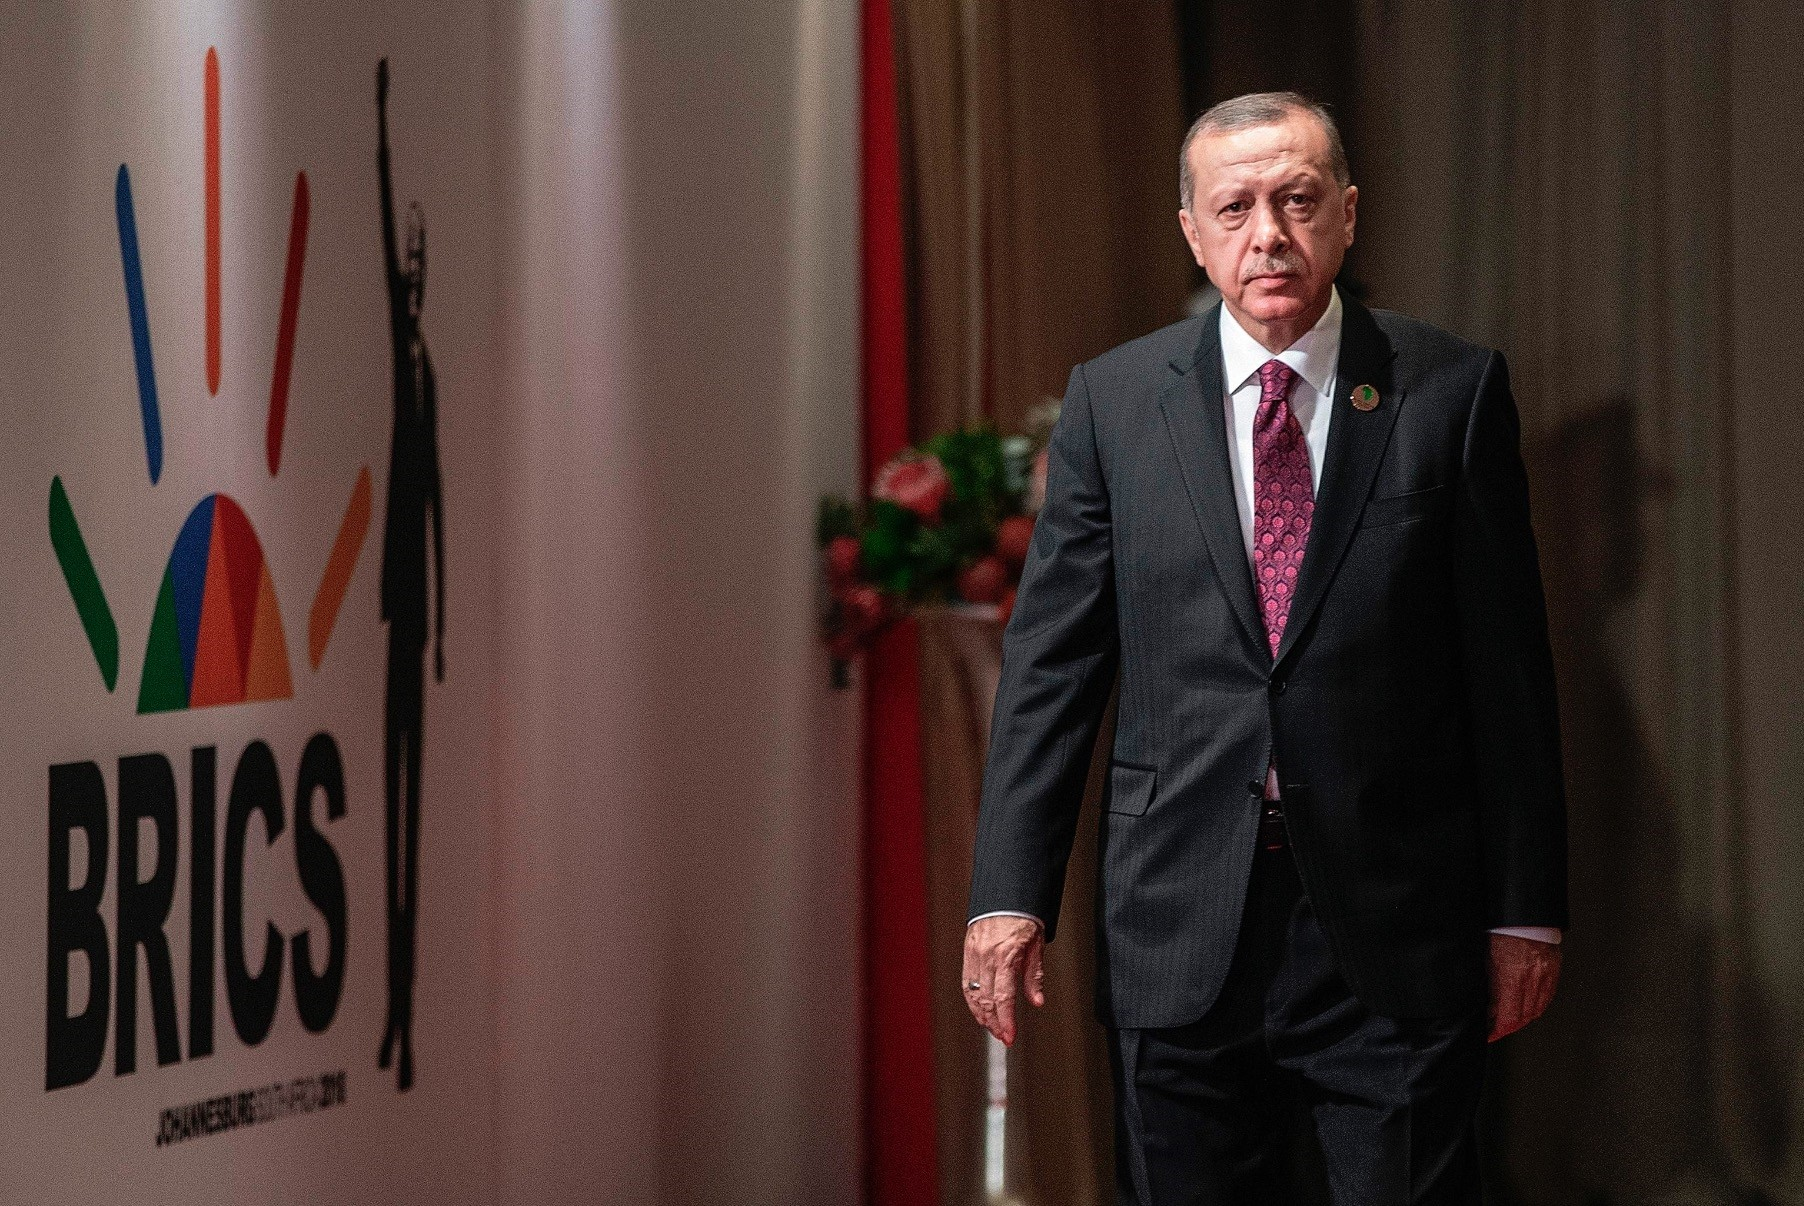 Turkeyu2019s President Recep Tayyip Erdou011fan arrives to attend a session meeting during the 10th BRICS summit